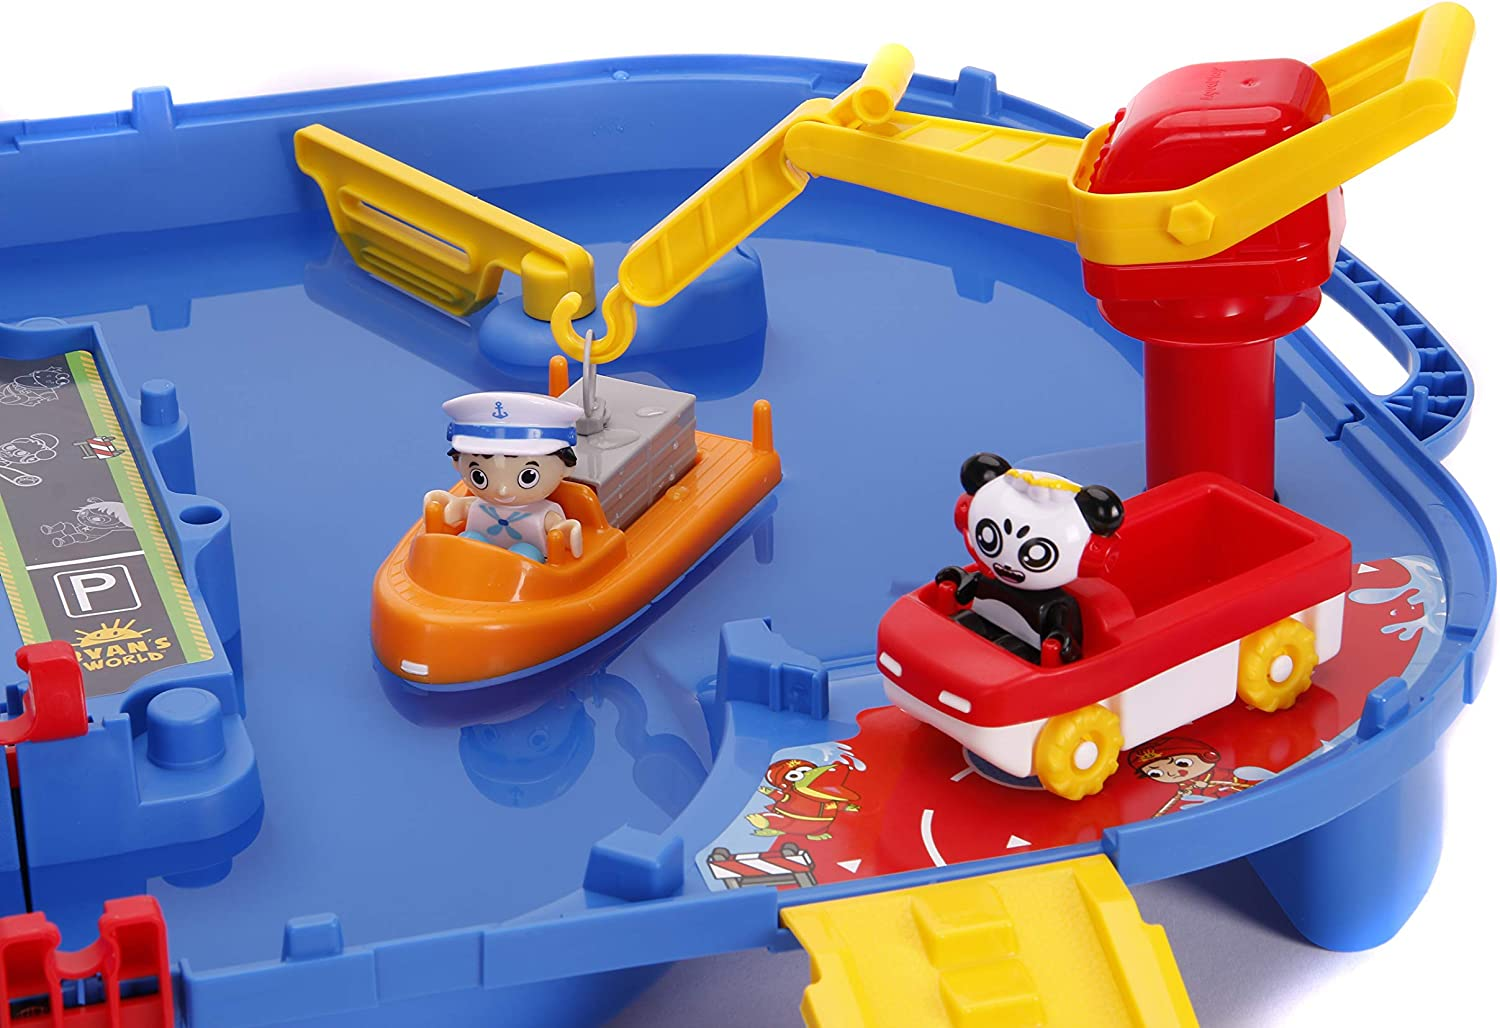 Jada Toys AquaPlay Ryans World Water Playset Red and Blue Water Table 2 Characters 2 Boats Included Indoor and Outdoor Water Toy